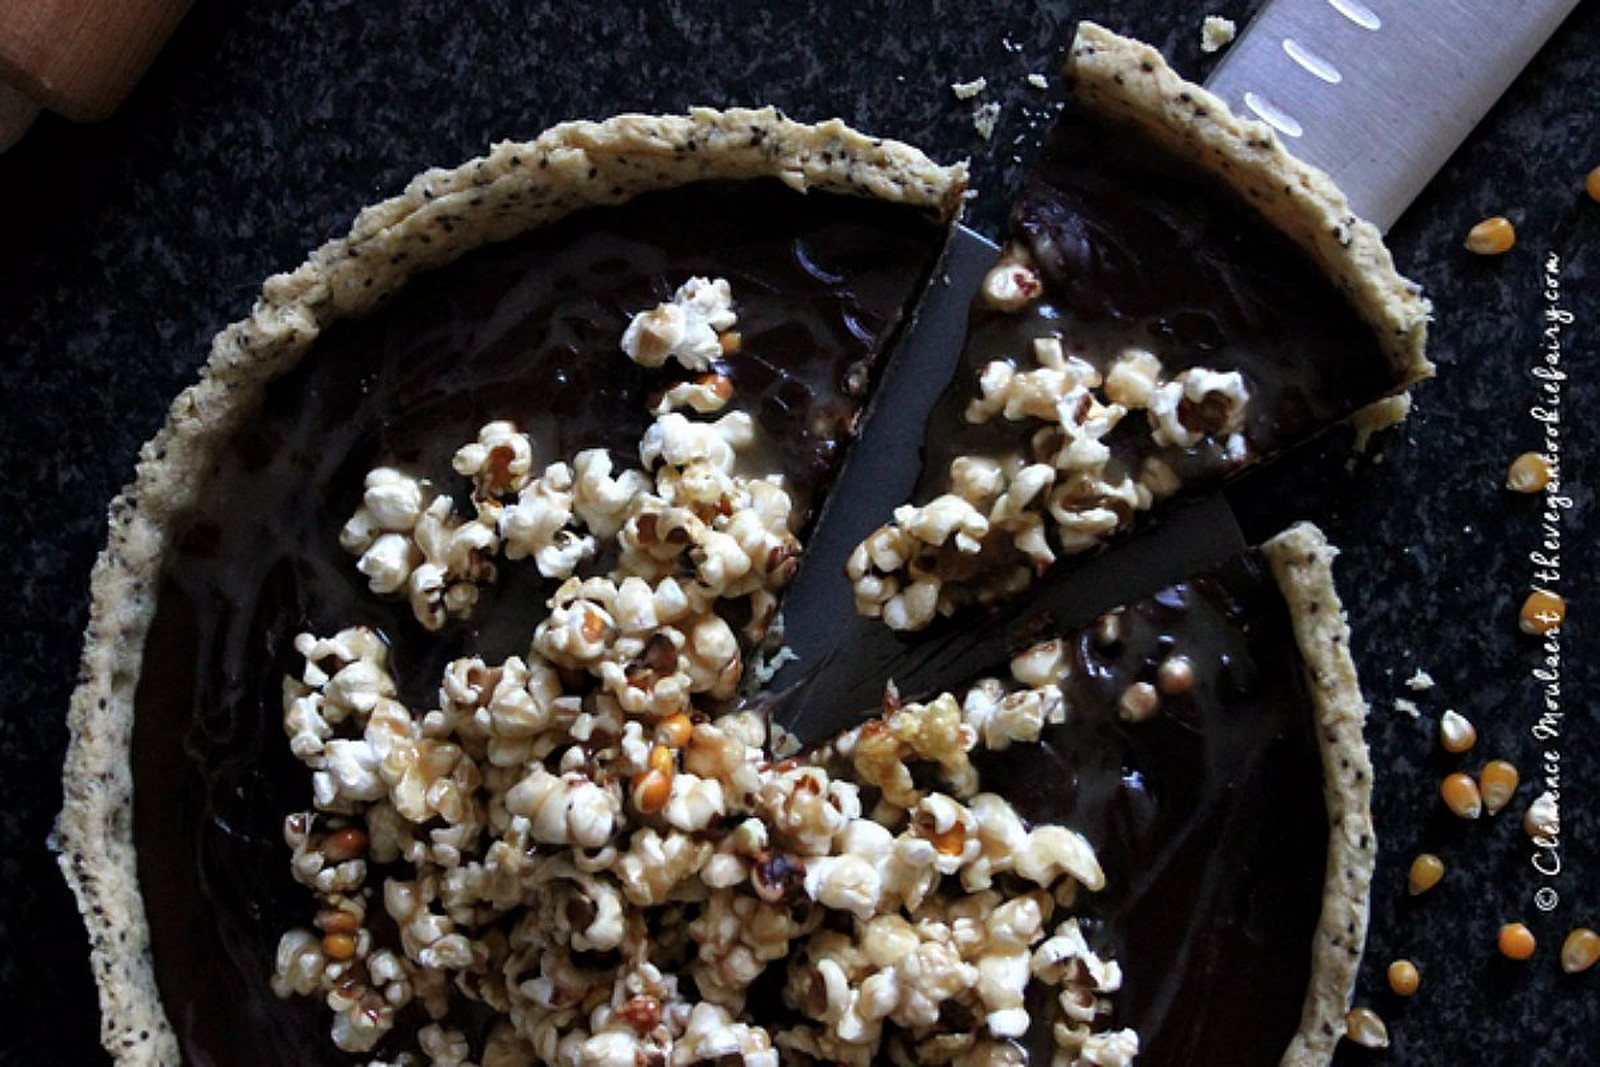 Salted Caramel Popcorn and Chocolate Tart [Vegan]